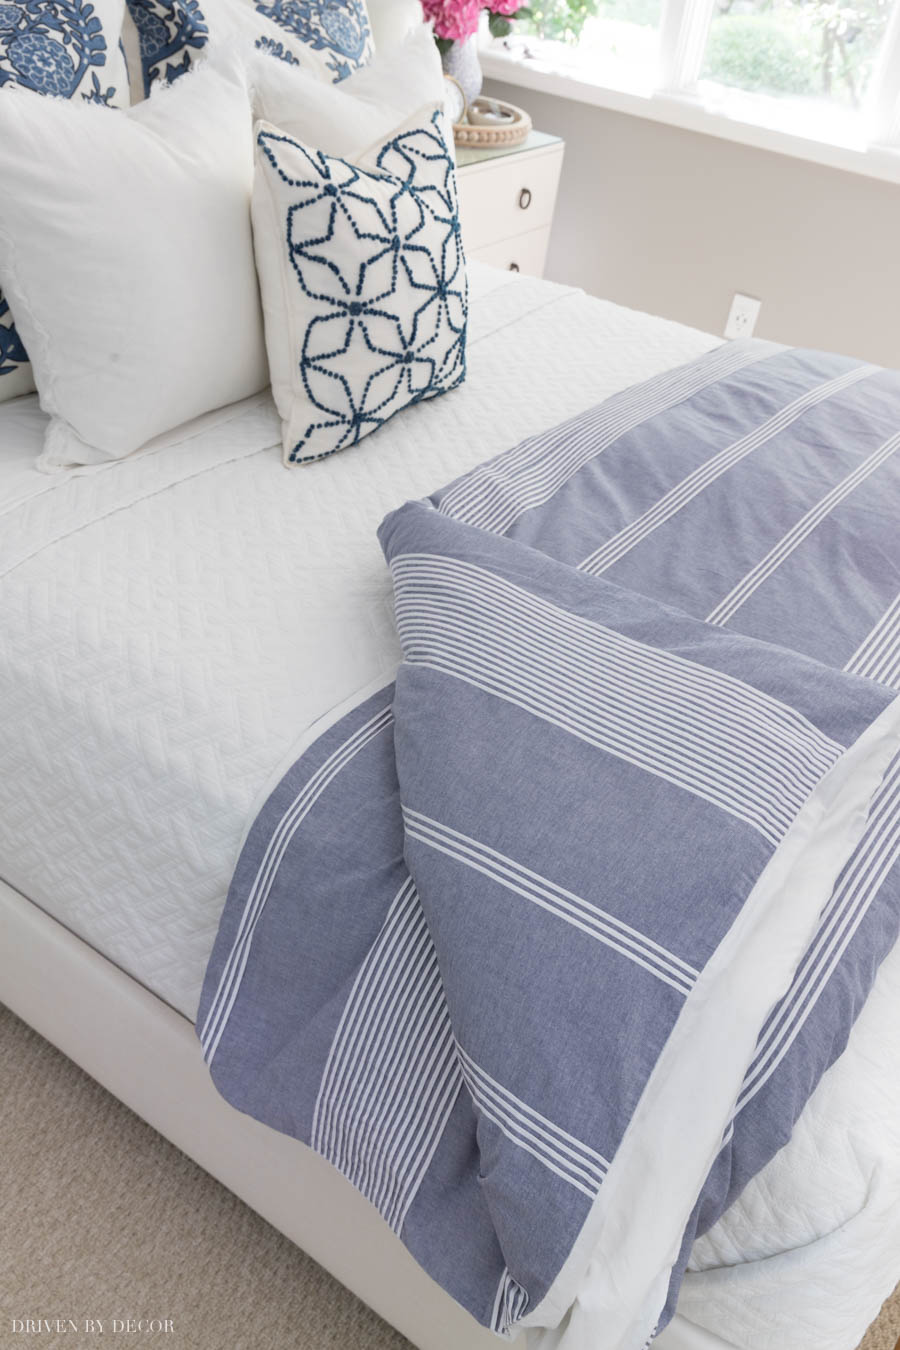 Crushing on this blue and white striped duvet! Looks so pretty folded at the foot of a bed!